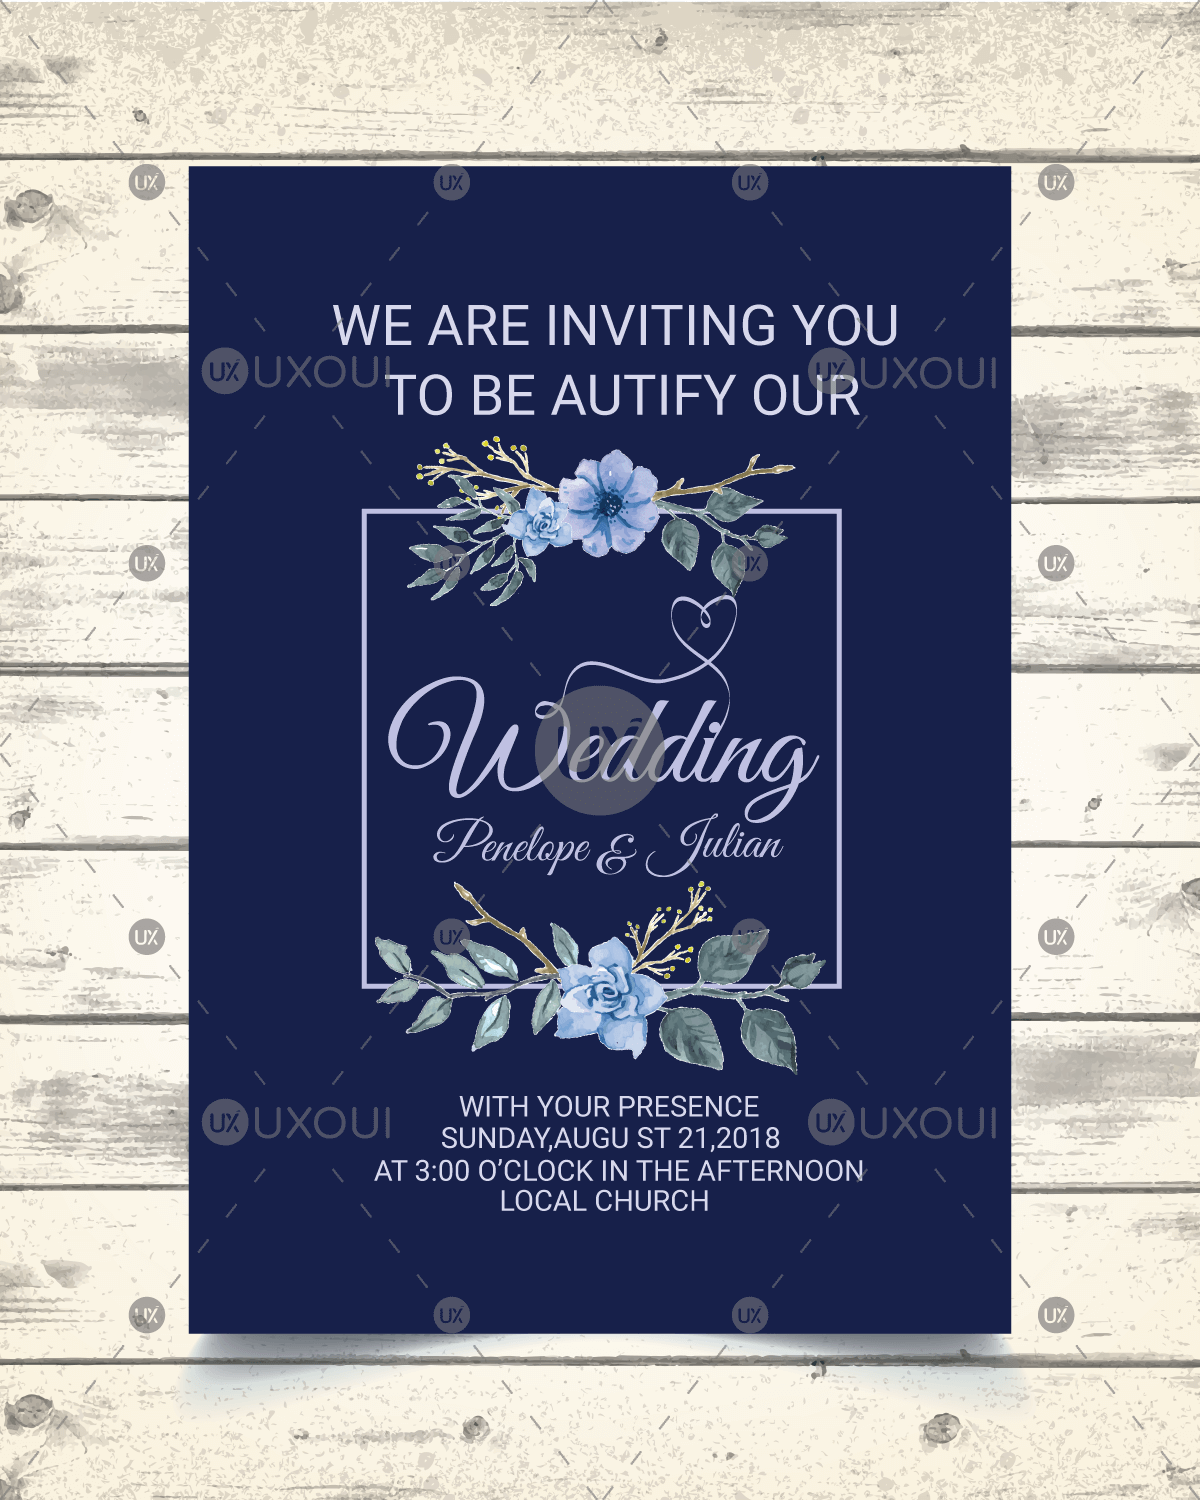 Vintage Wedding Invitation Card Design Template With Floral Style Vector Uxoui